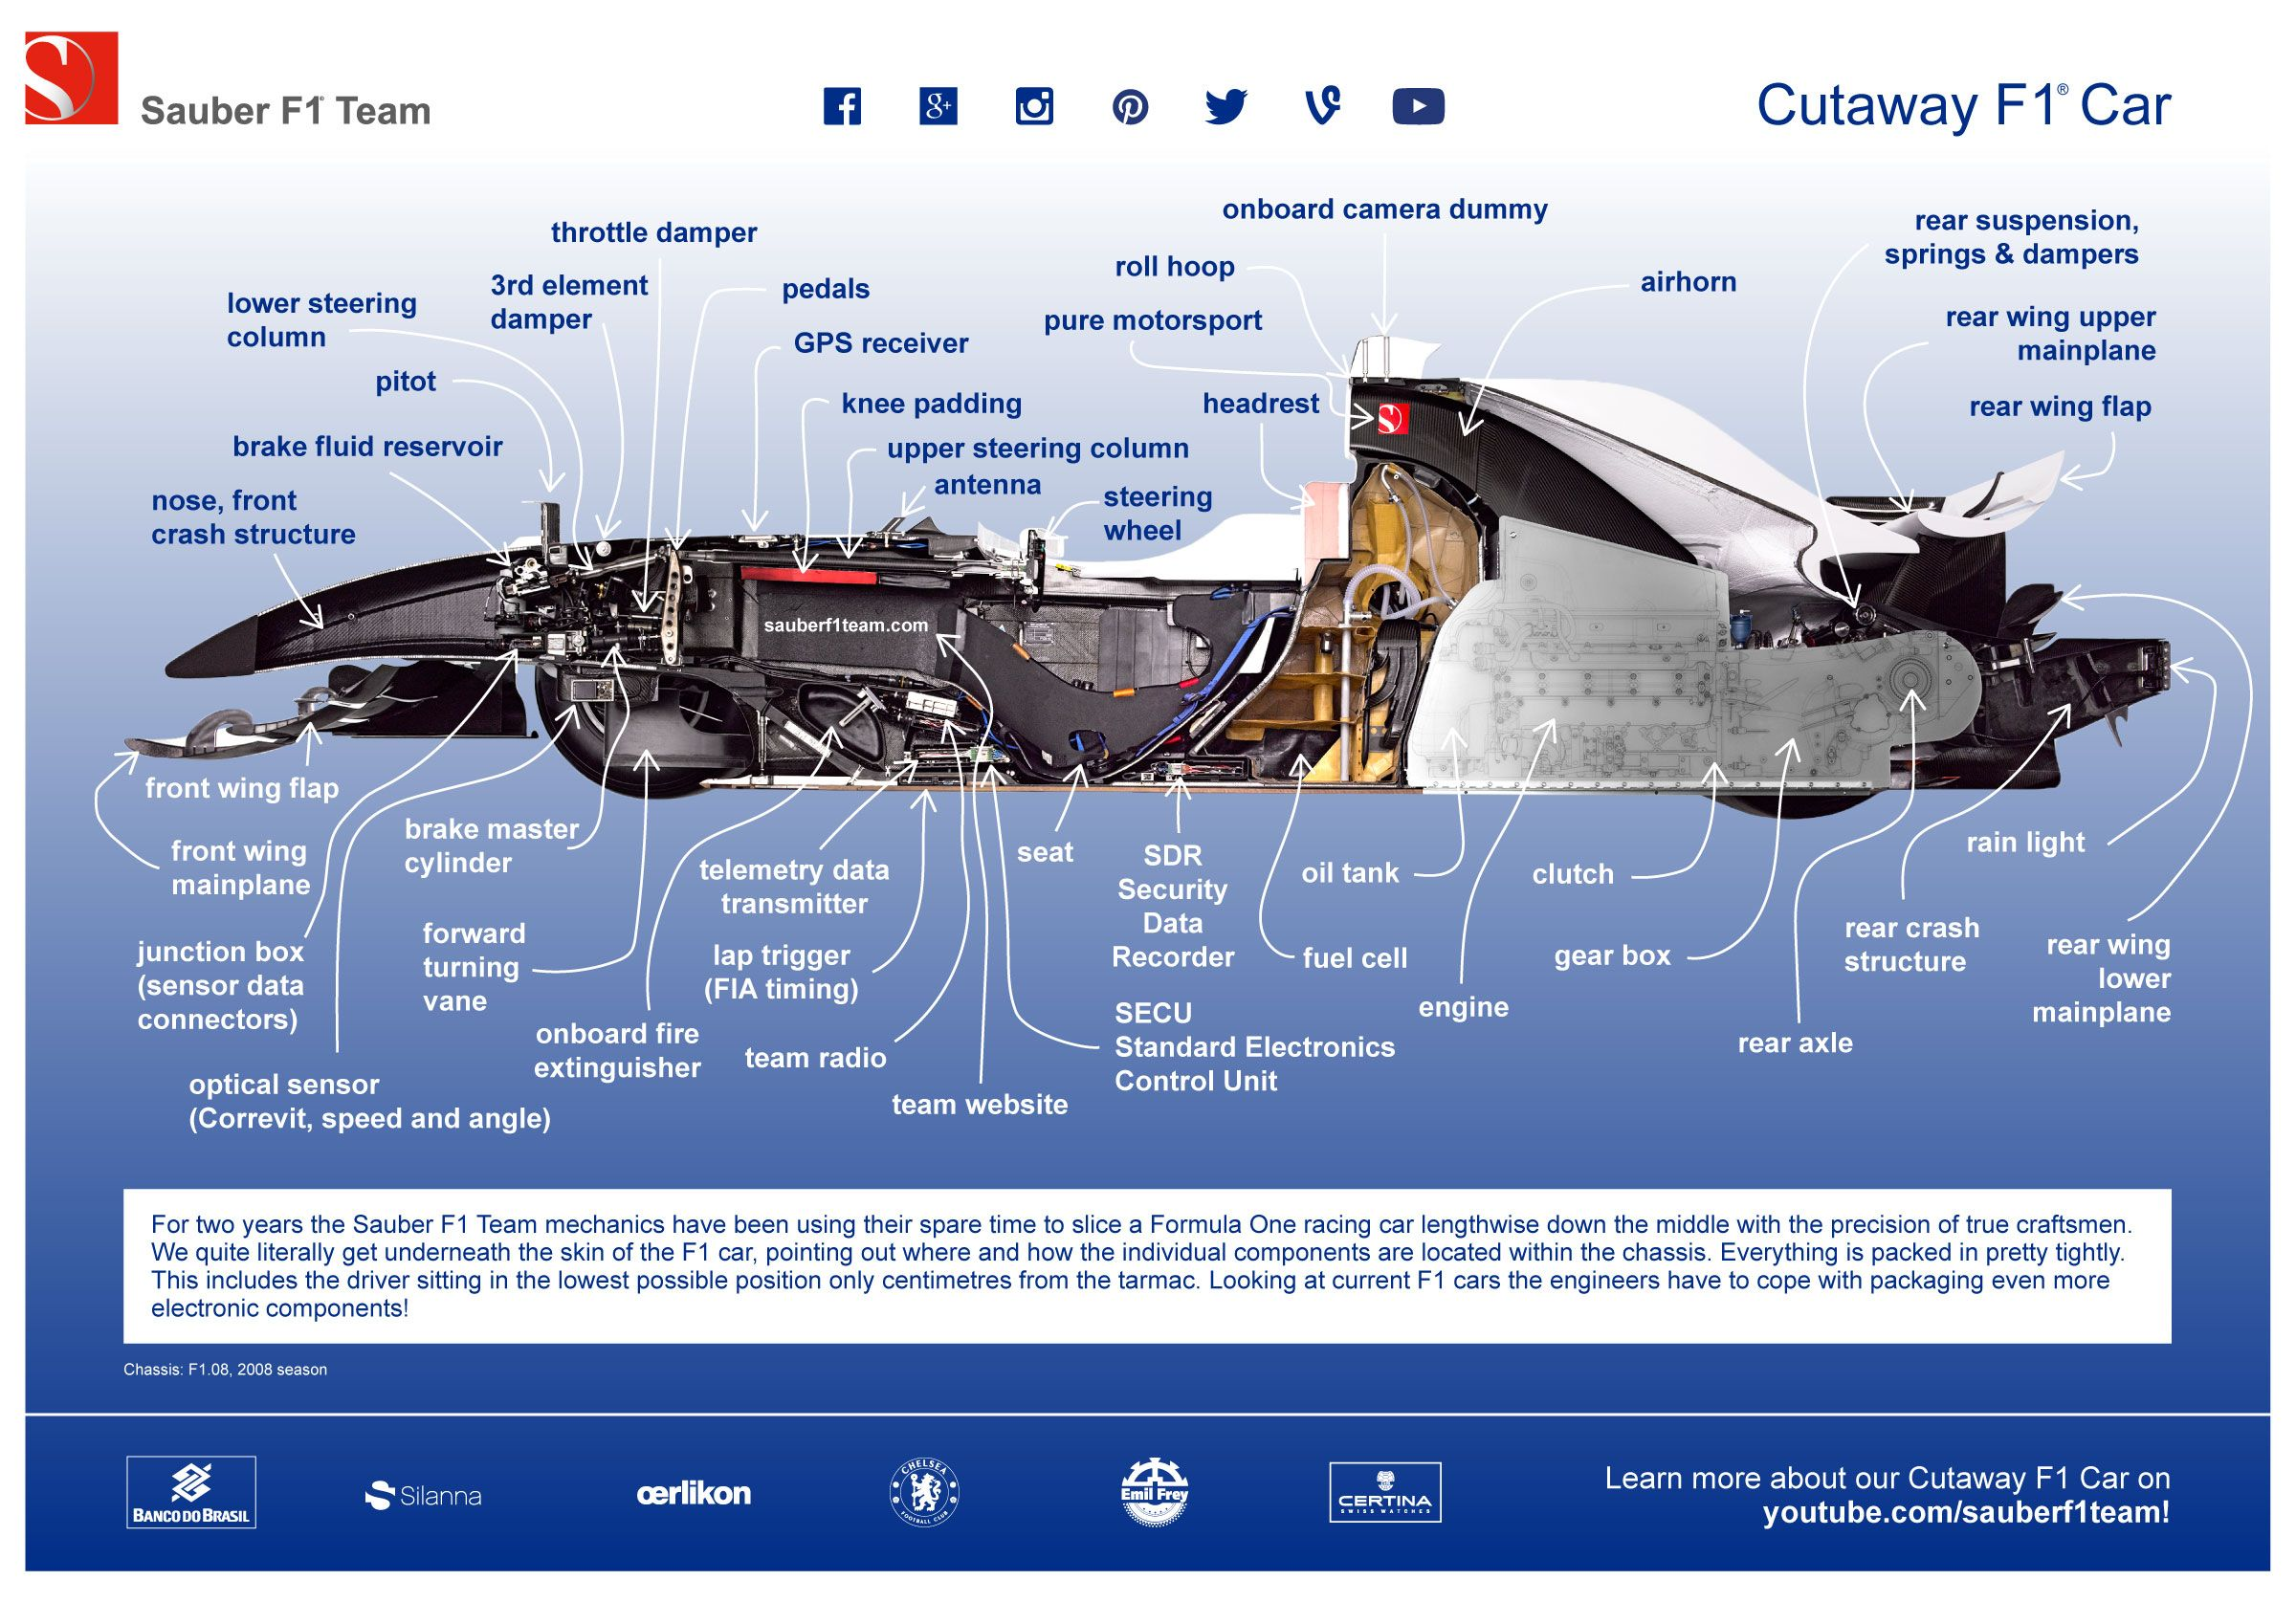 If You Ve Missed Our Cutaway F1 Car Infographic So Far Download The Pdf 3 Mb From Our Website Now F1 Sauberf1tea Onboard Camera Motorsport Car Throttle